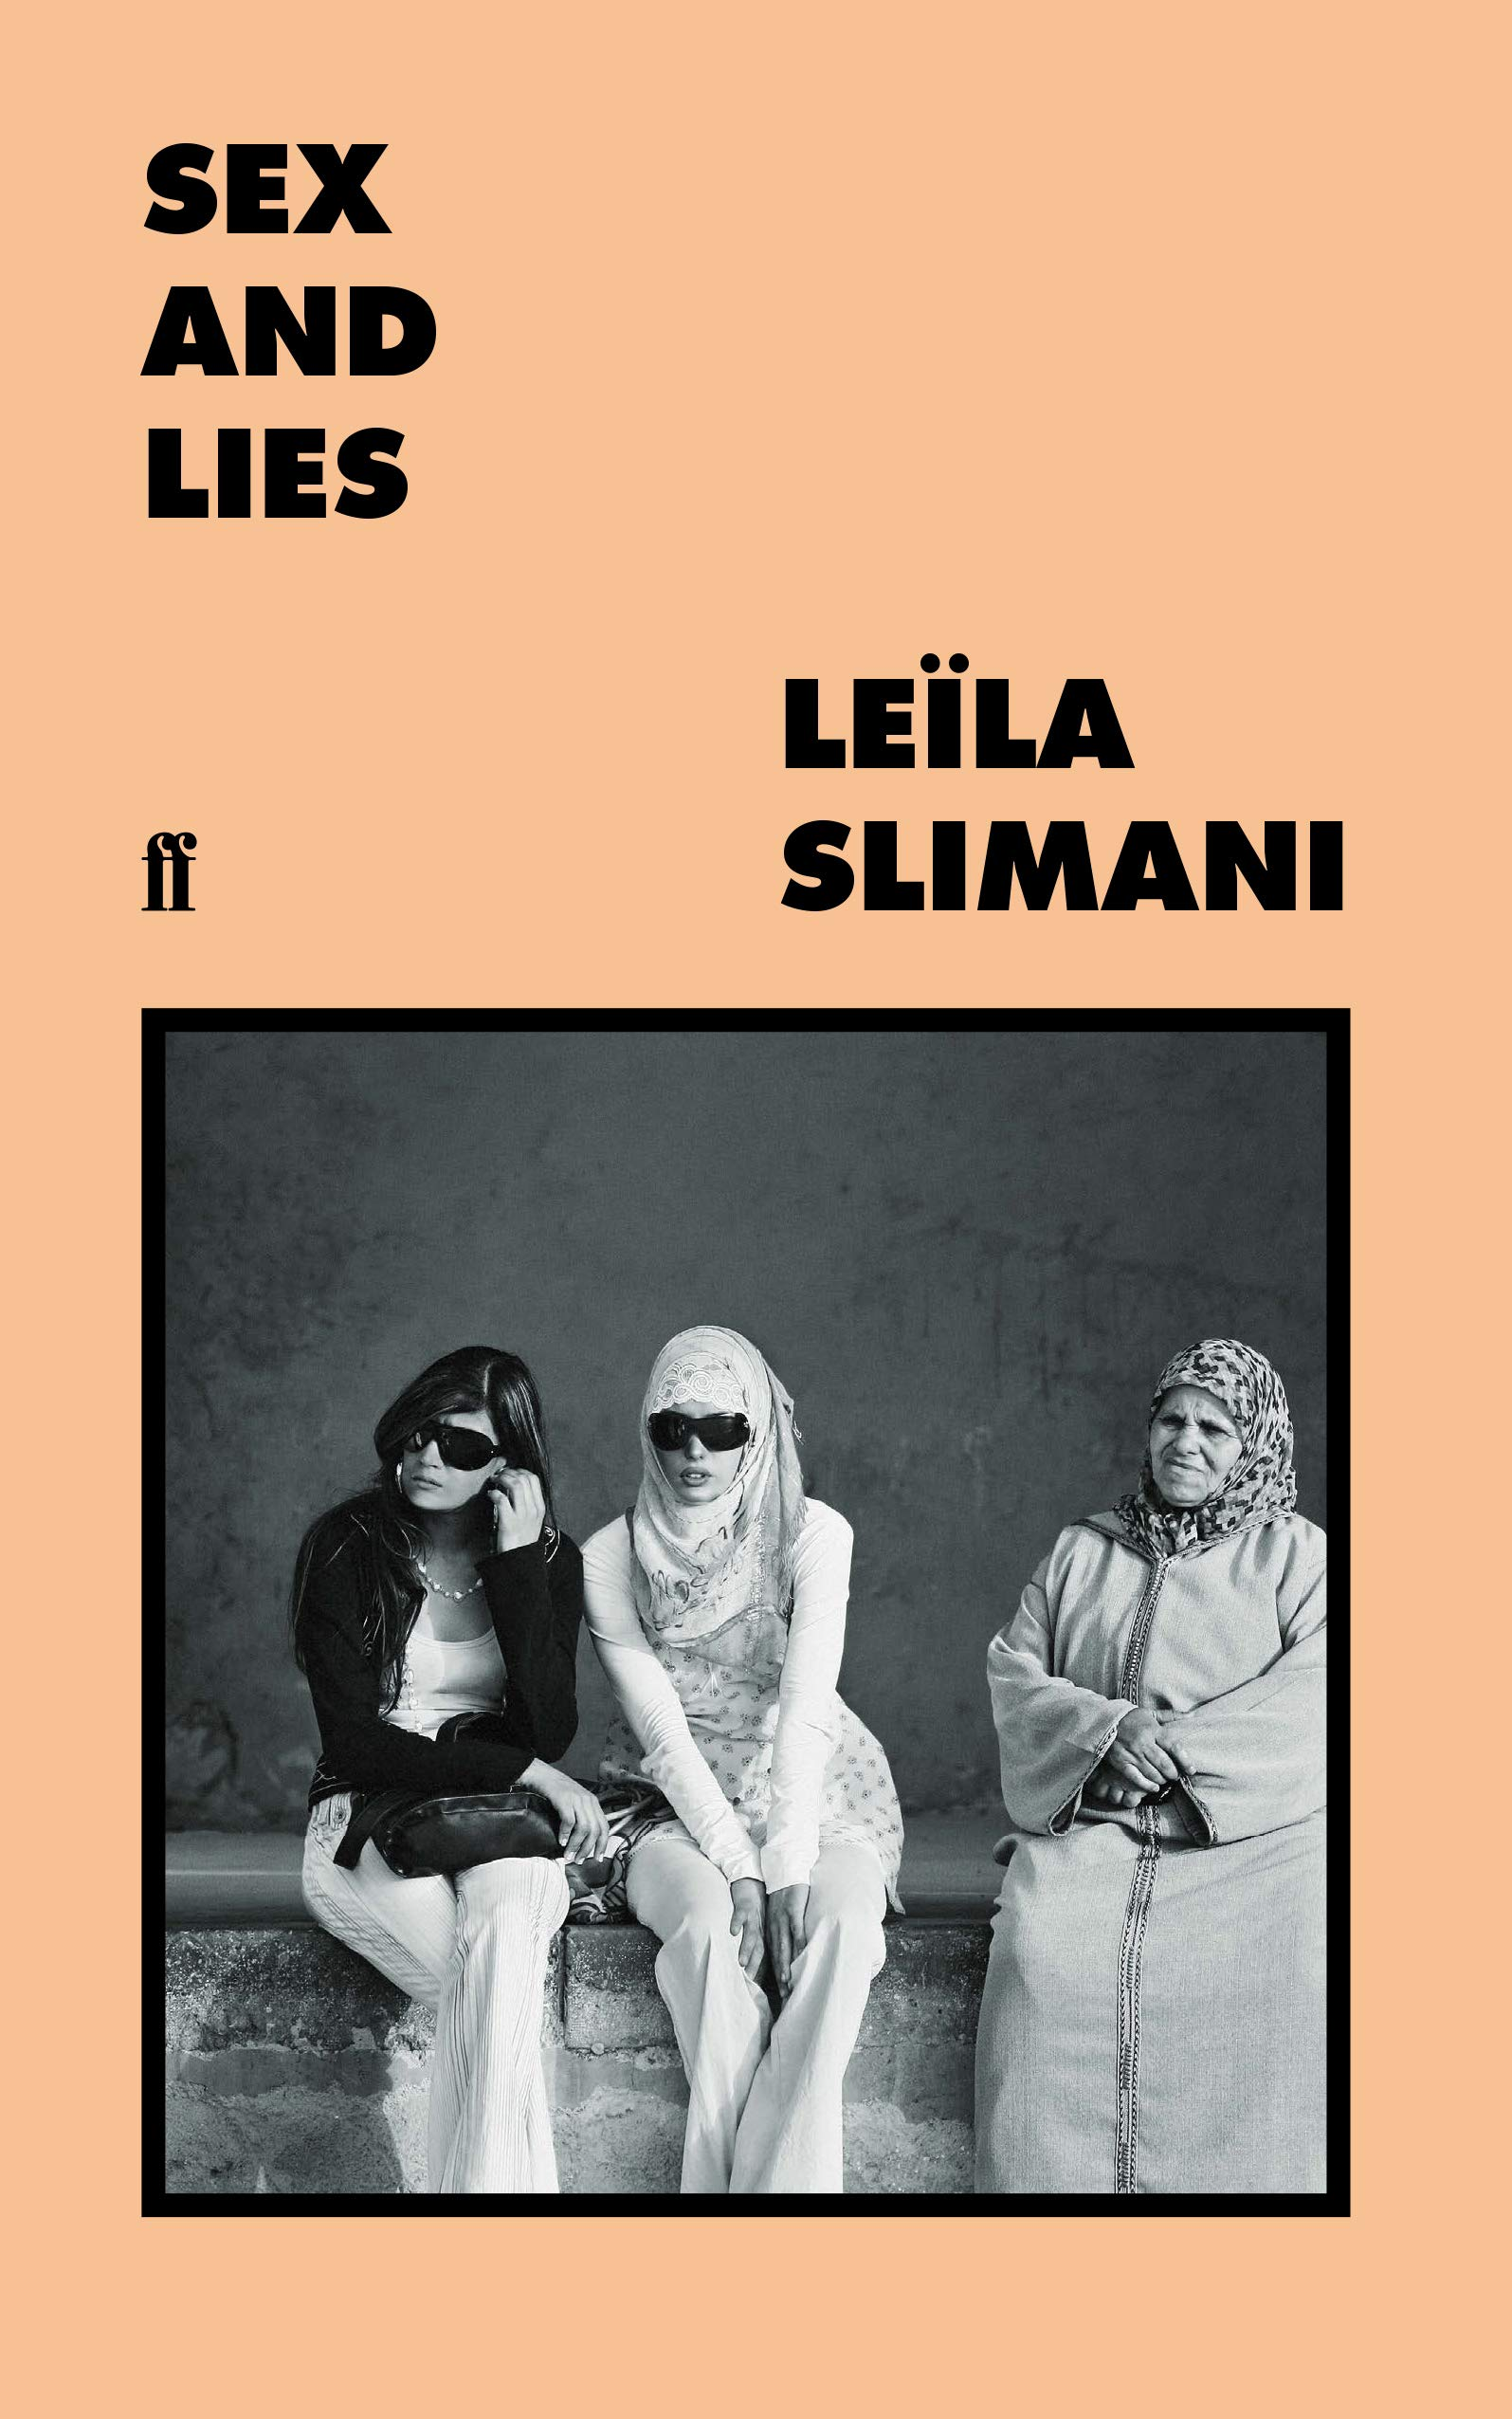 Sex and Lies by Leila Slimani